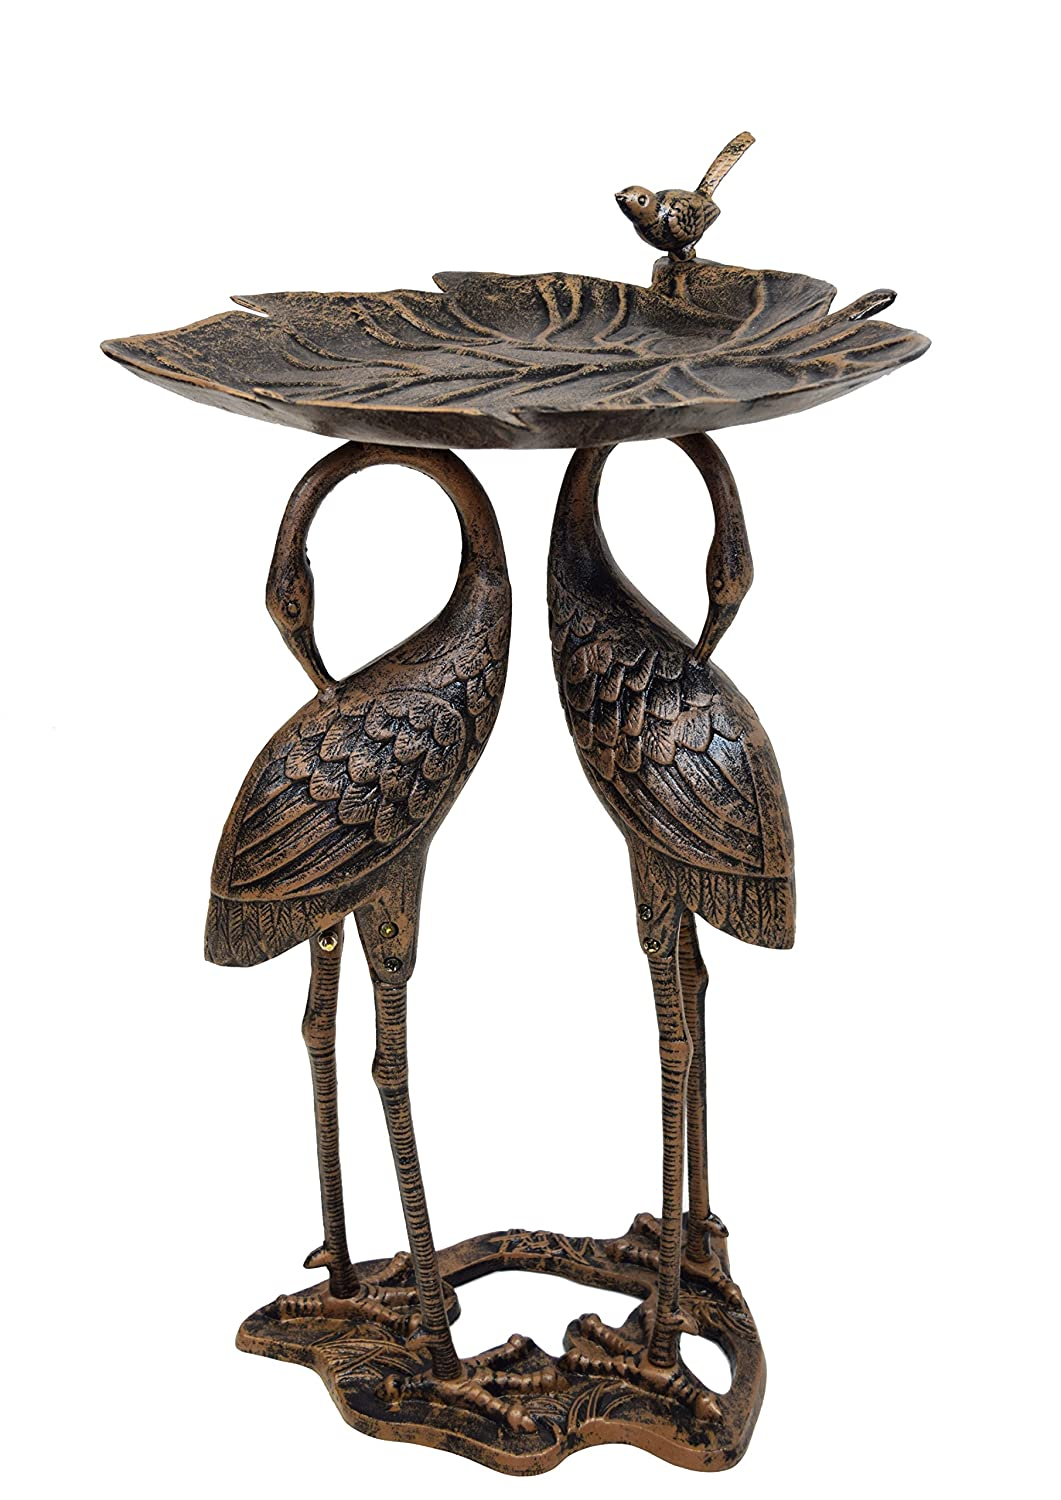 Oakland Living 2-Crane Lily Bird Bath Oakland Living Co. - DROPSHIP 5608-AB